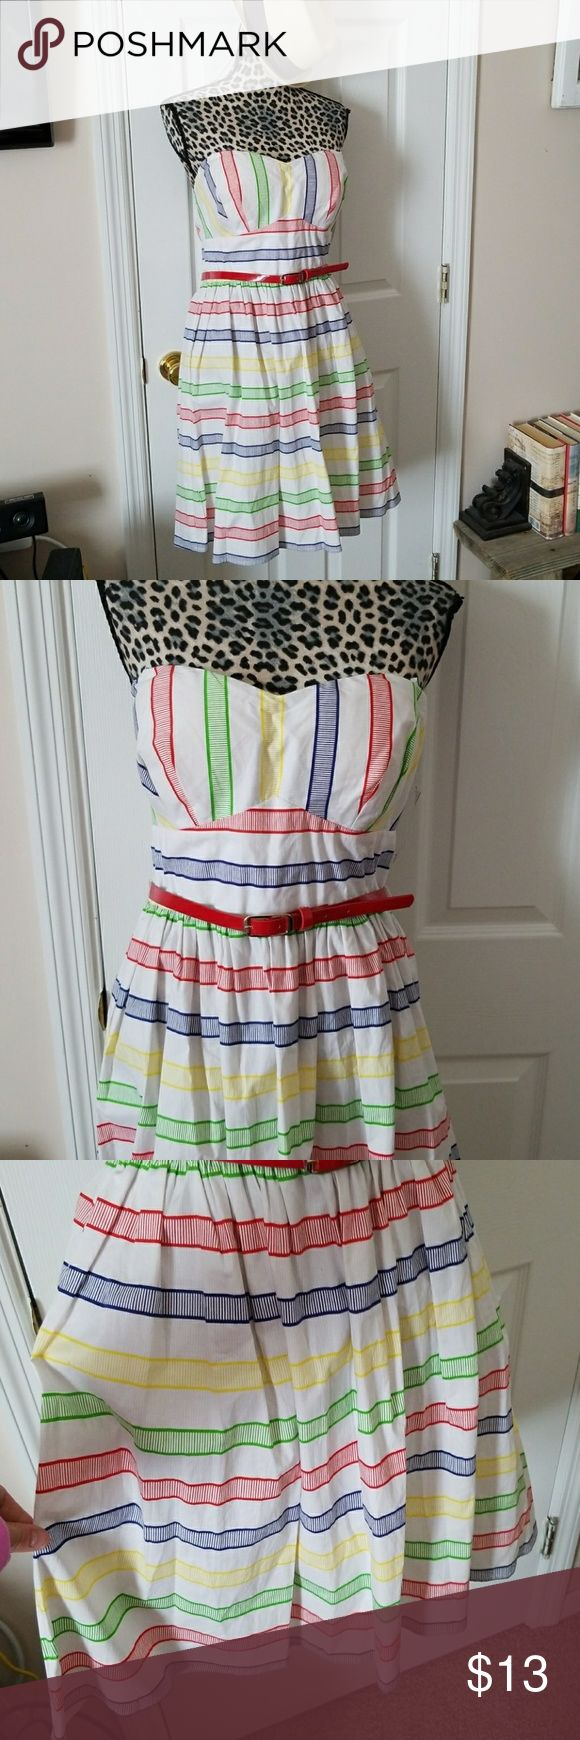 """BNWT! GORGEOUS """"B. SMART"""" STRIPED STRAPPLESS DRESS BNWT! GORGEOUS """"B. SMART"""" STRIPED STRAPPLESS DRESS!! The colors are so pretty!!! BRAND NEW NEVER WORN! A little big fornthe mannequin it's a size 14. Yellow, blue, green and red stripes! PERFECT for summer! B. Smart Dresses"""